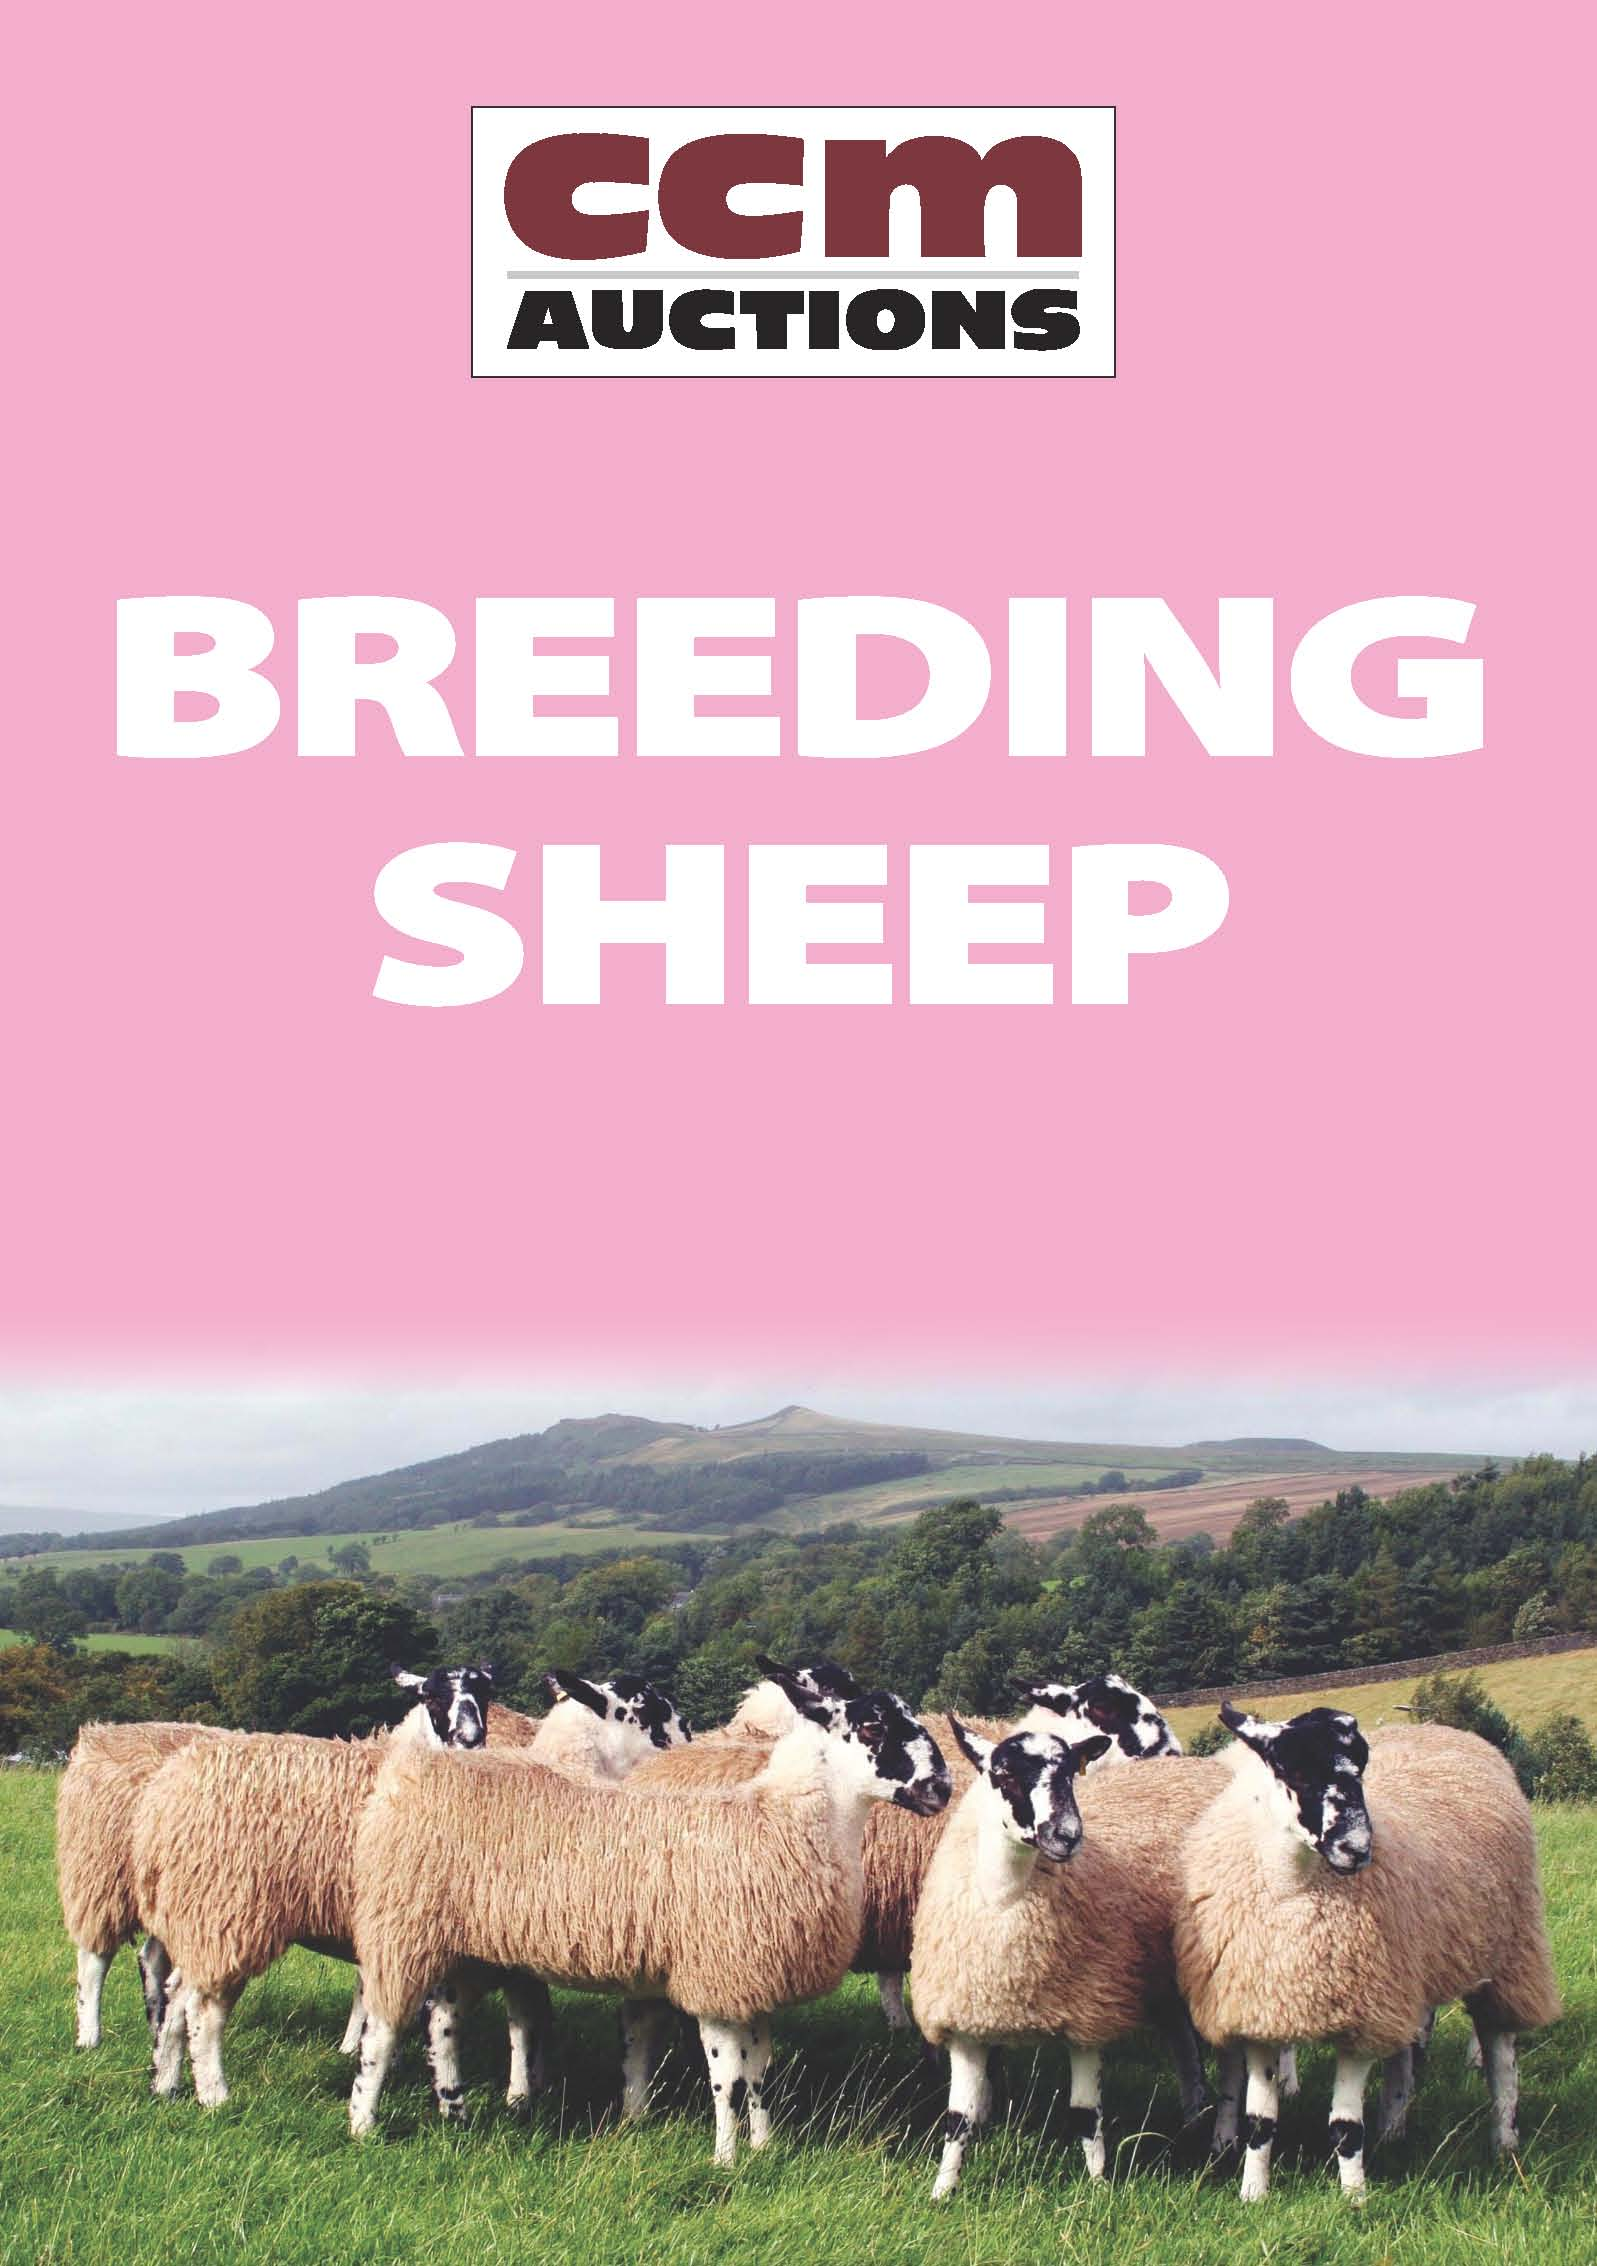 SHEARLING GIMMERS - TUESDAY 19TH AUGUST 2014